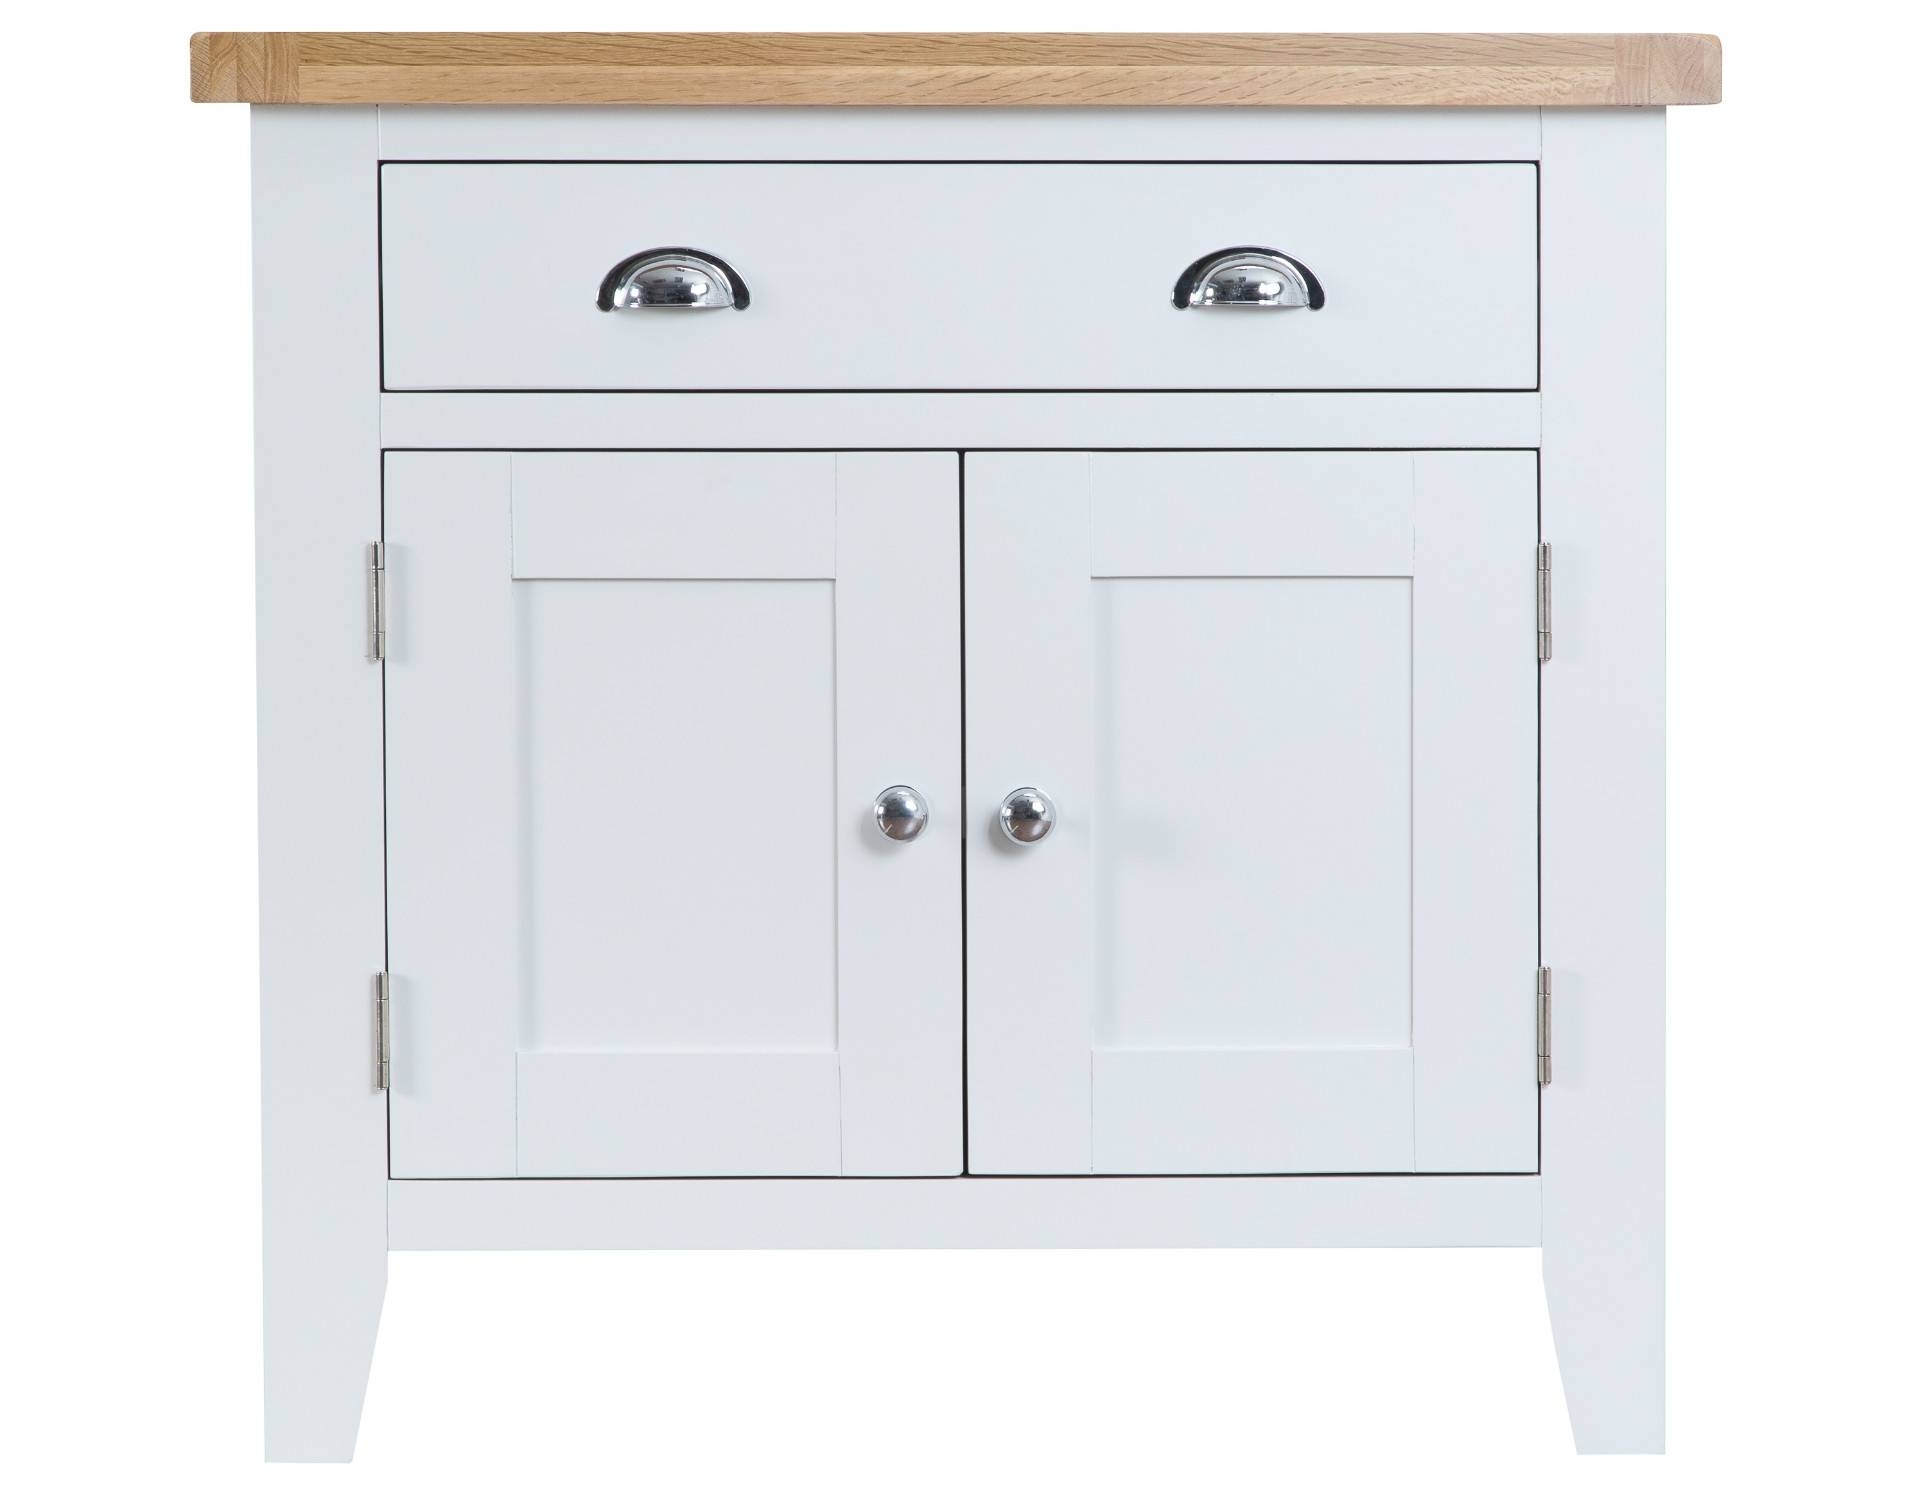 Liverpool Painted Oak Sideboard / Cream Small Cabinet / Cupboard throughout Cream and Oak Sideboards (Image 9 of 15)